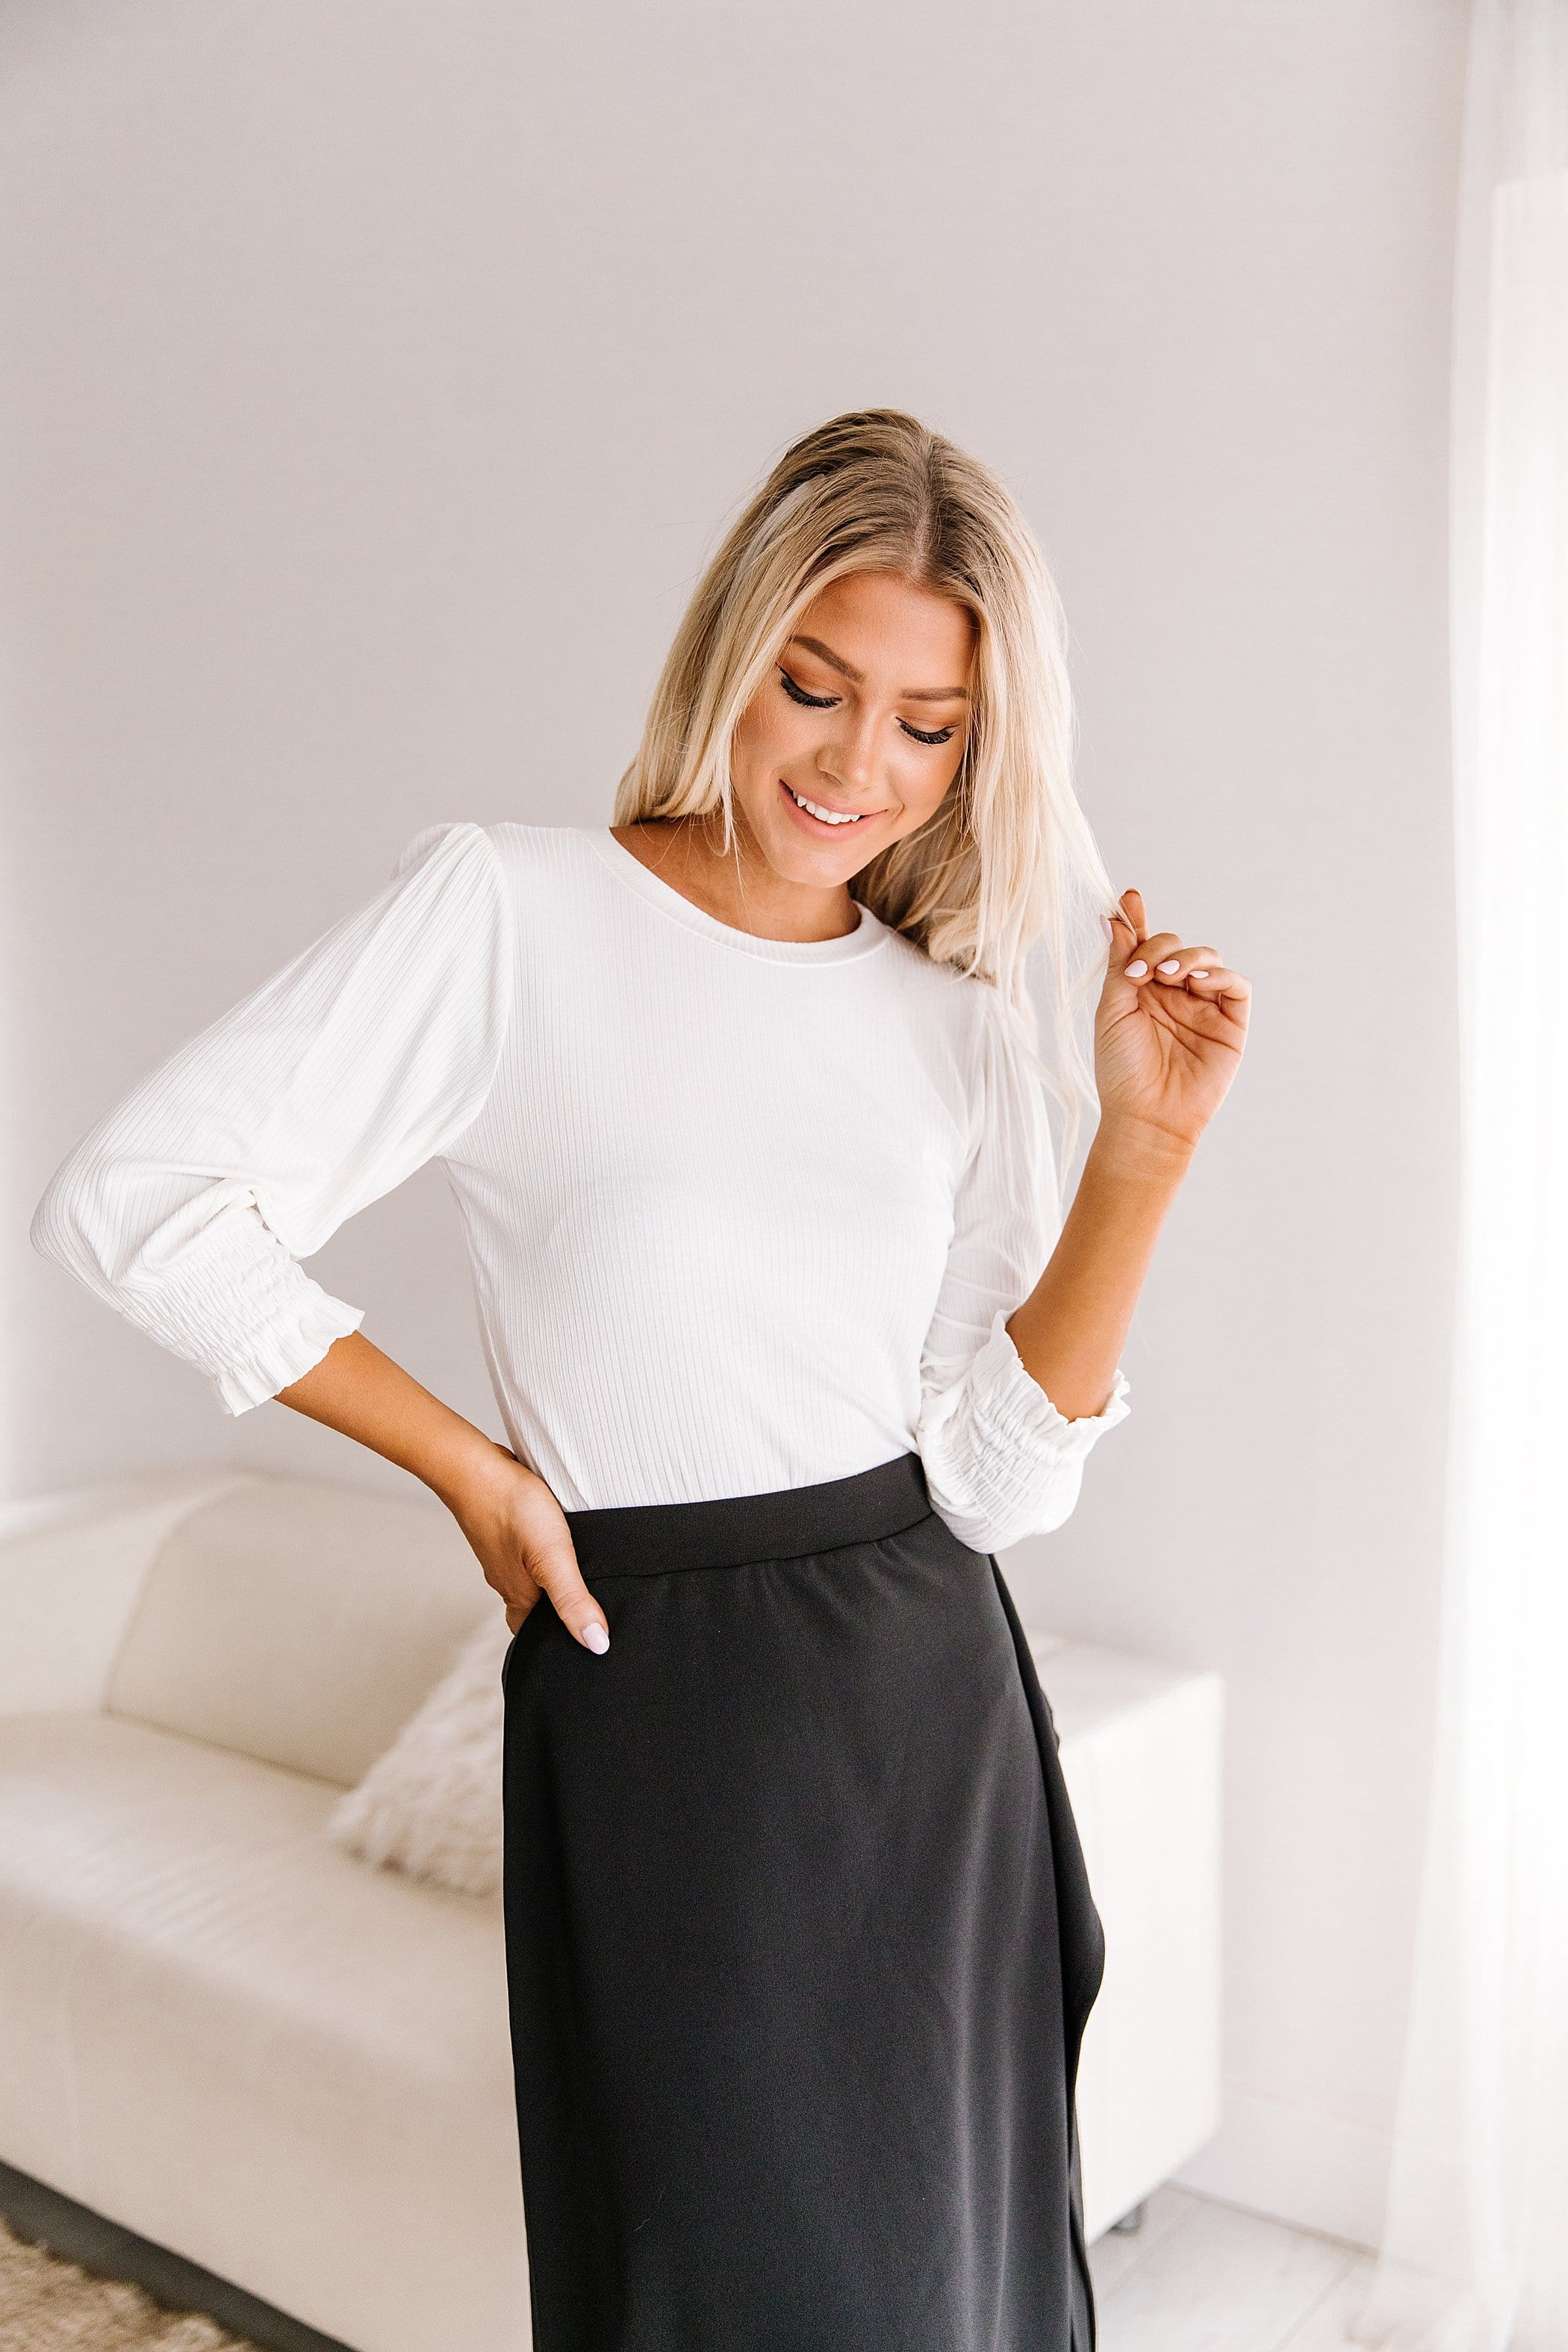 The Astoria Puff Sleeve Top in Black and Ivory